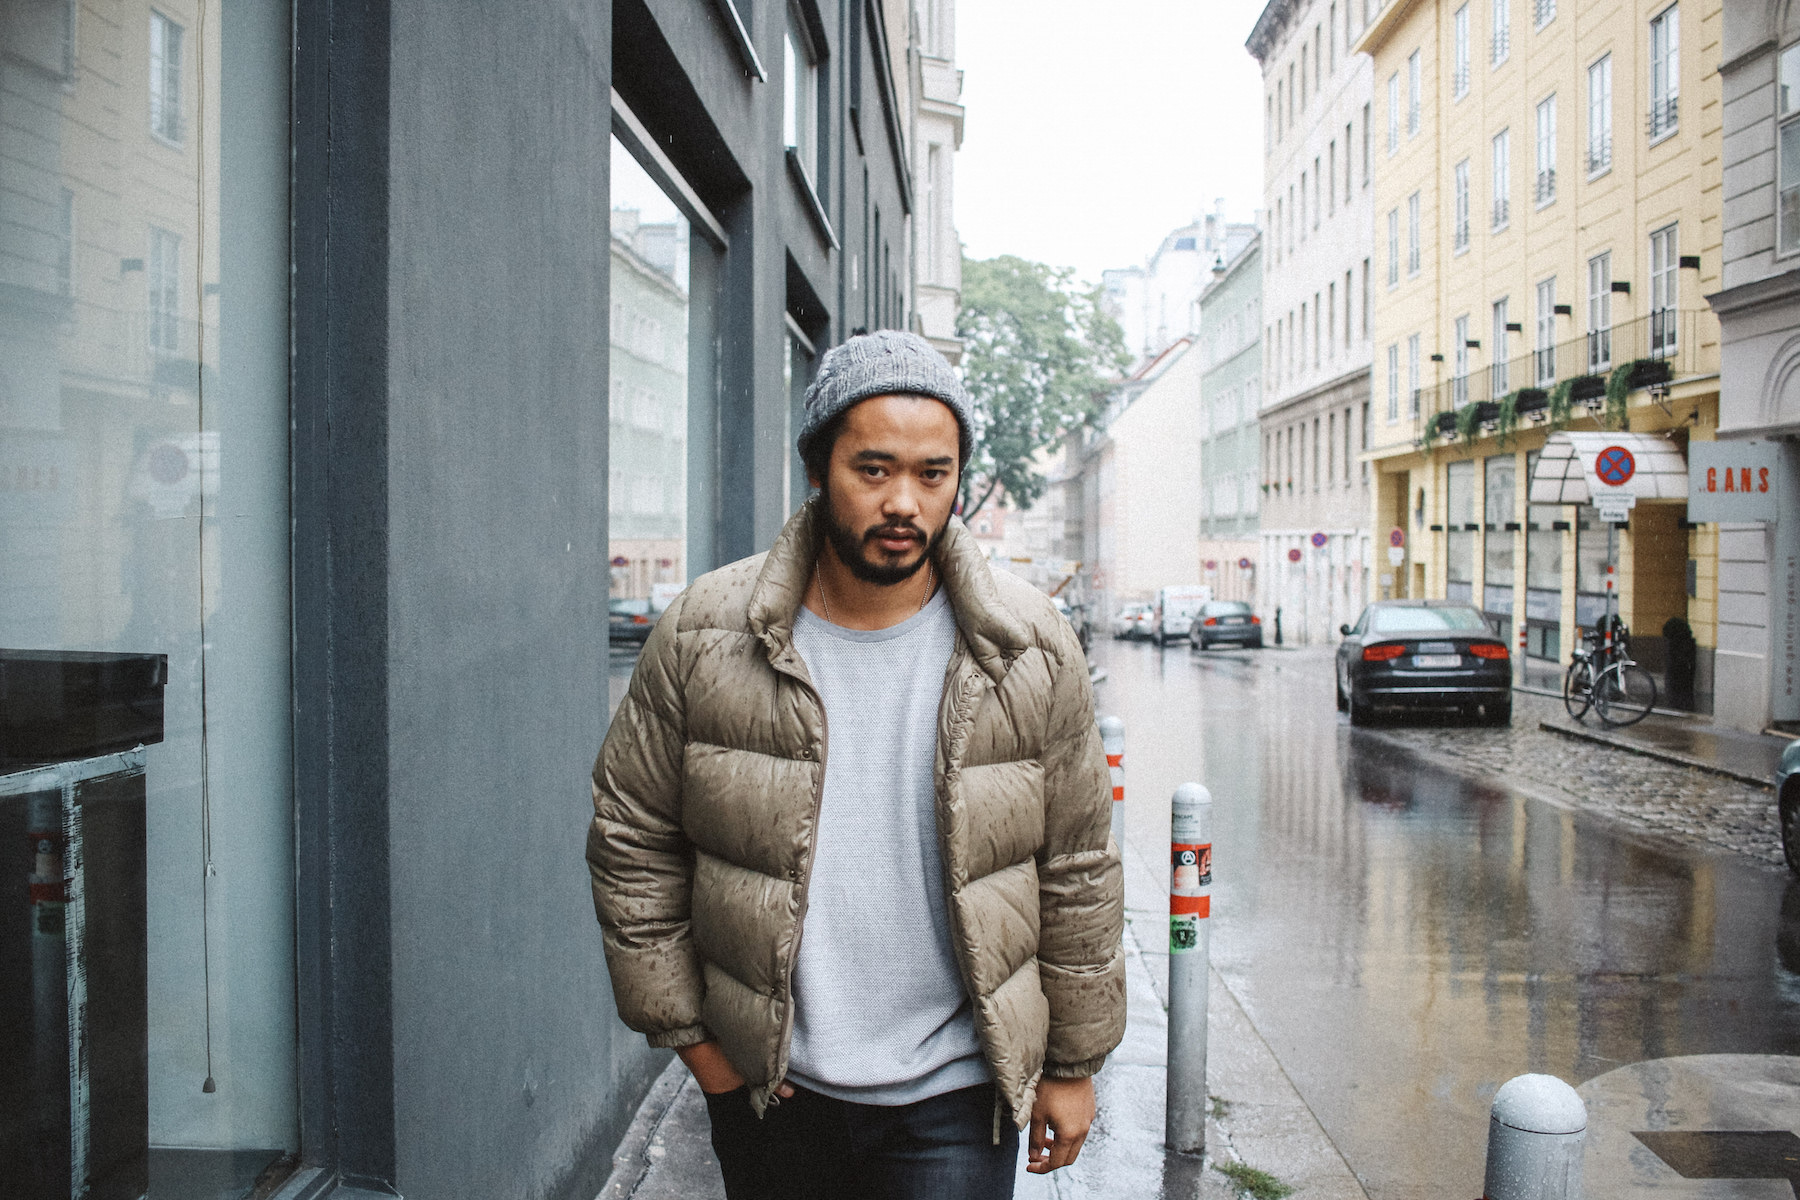 Stylish Beards on the Streets of Vienna with Braun_Wear a beard as an accessory_Meanwhile in Awesometown_Austrian Mens Fashion and Lifestyle Blogger20